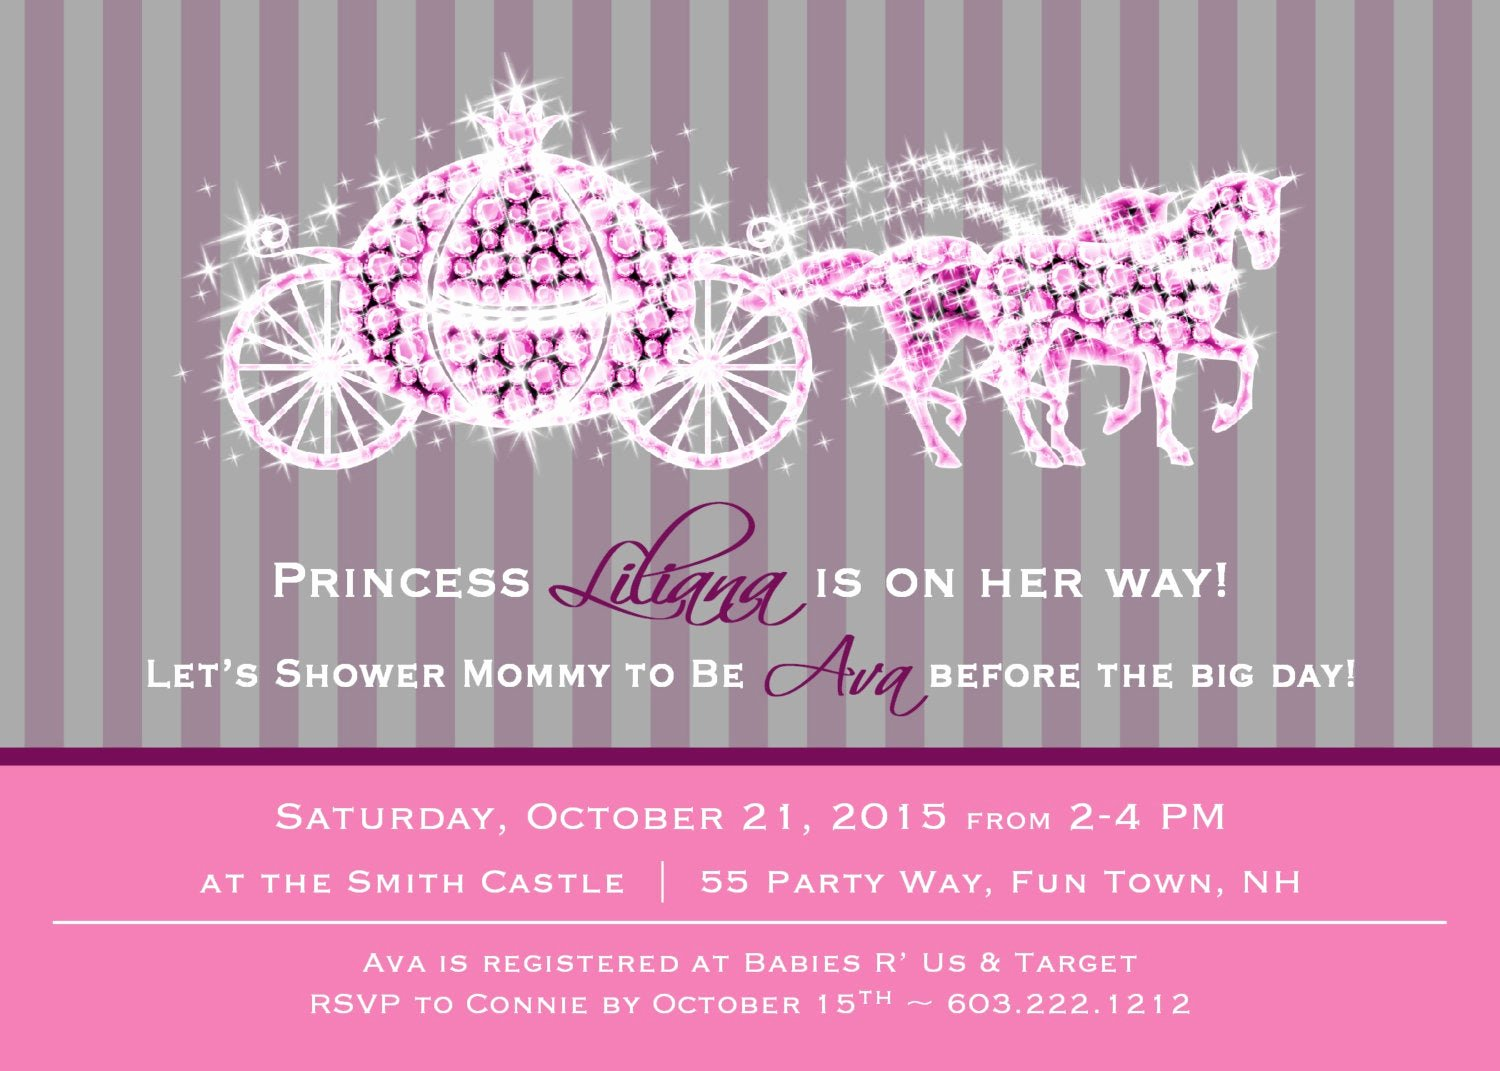 Princess Baby Shower Invitations Luxury Princess Baby Shower Invitation Girl Princess Baby Shower